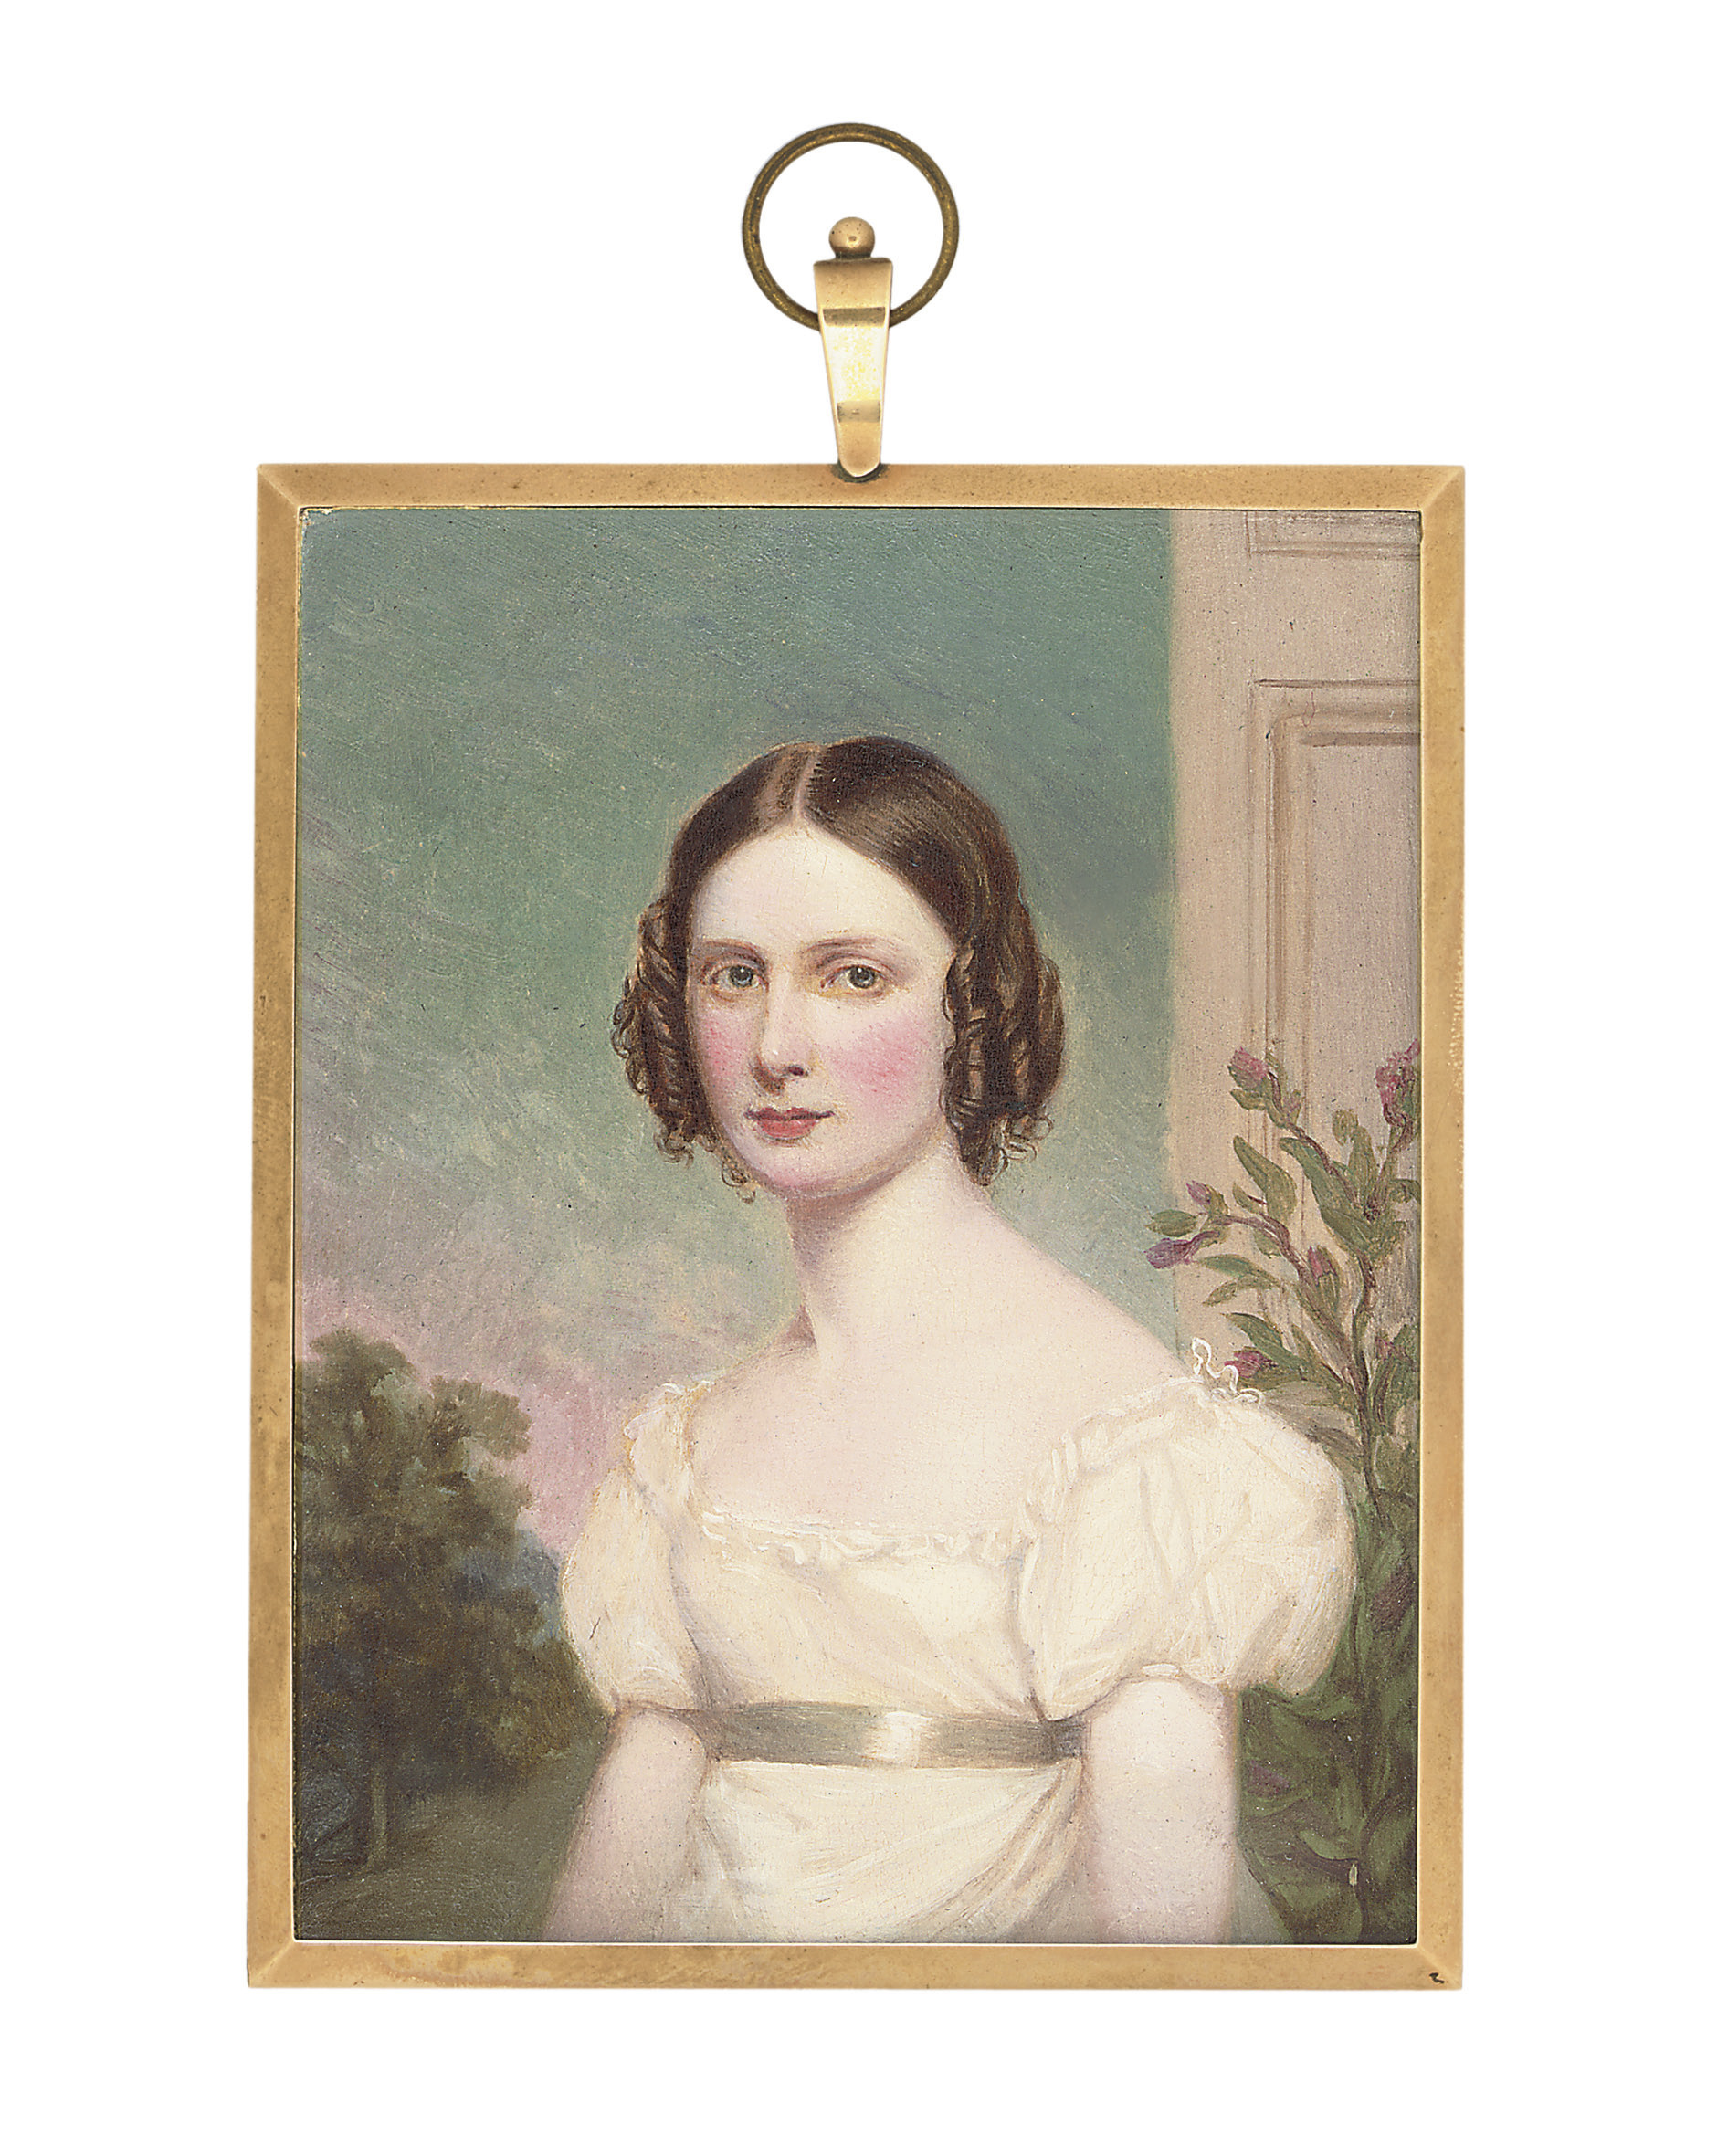 Lady John Chichester, in lace-bordered white dress with short puffed sleeves and sash, brown hair dressed in ringlets; landscape and pillar background